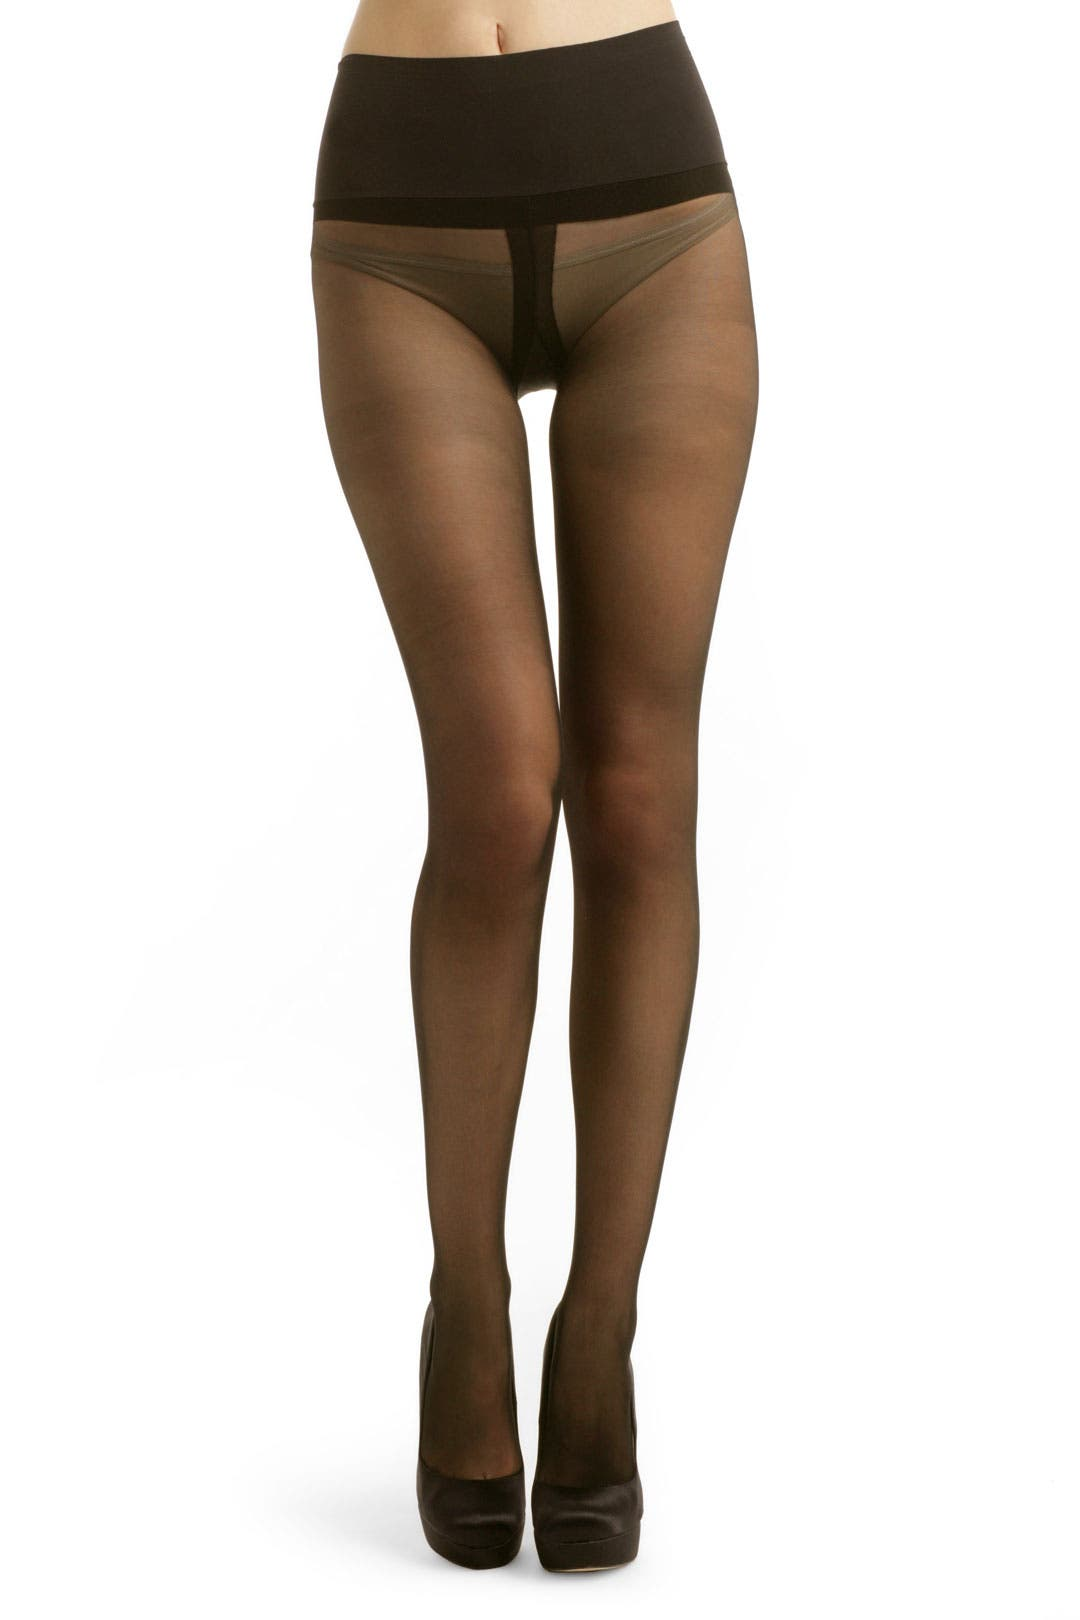 Black Premier Sheer Tights by Commando